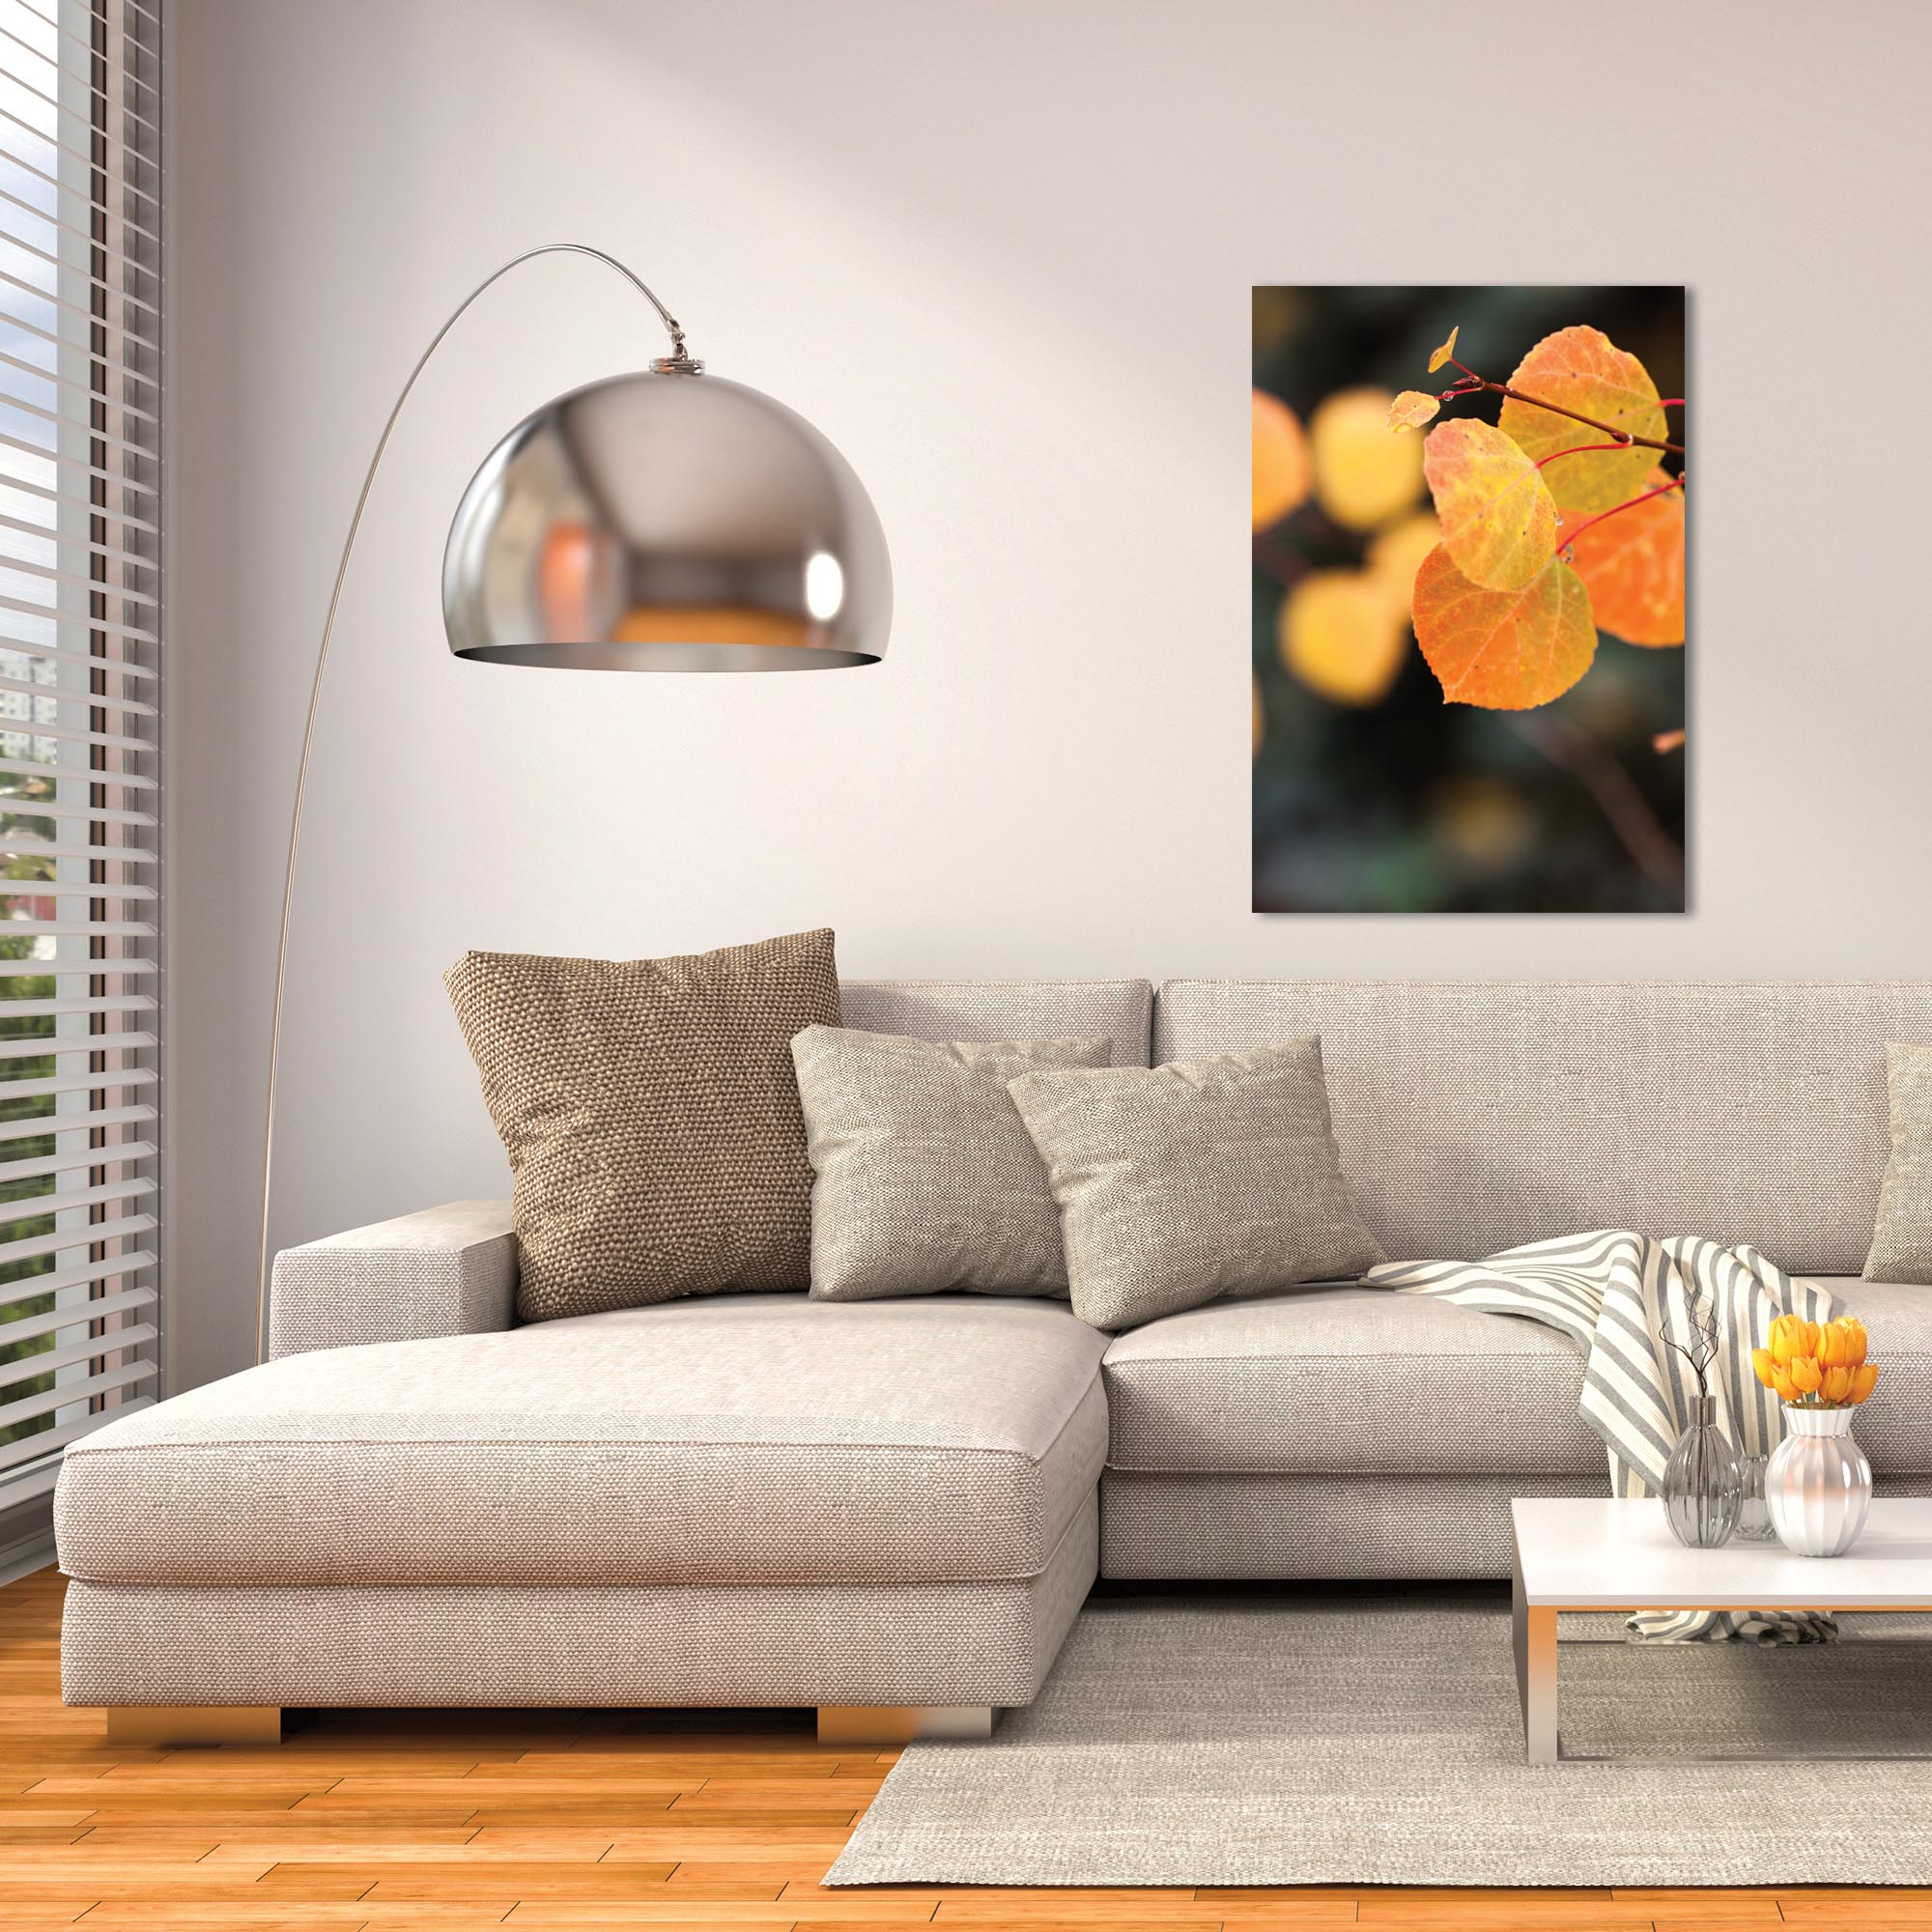 Nature Photography 'Changing Leaves' - Autumn Leaves Art on Metal or Plexiglass - Lifestyle View